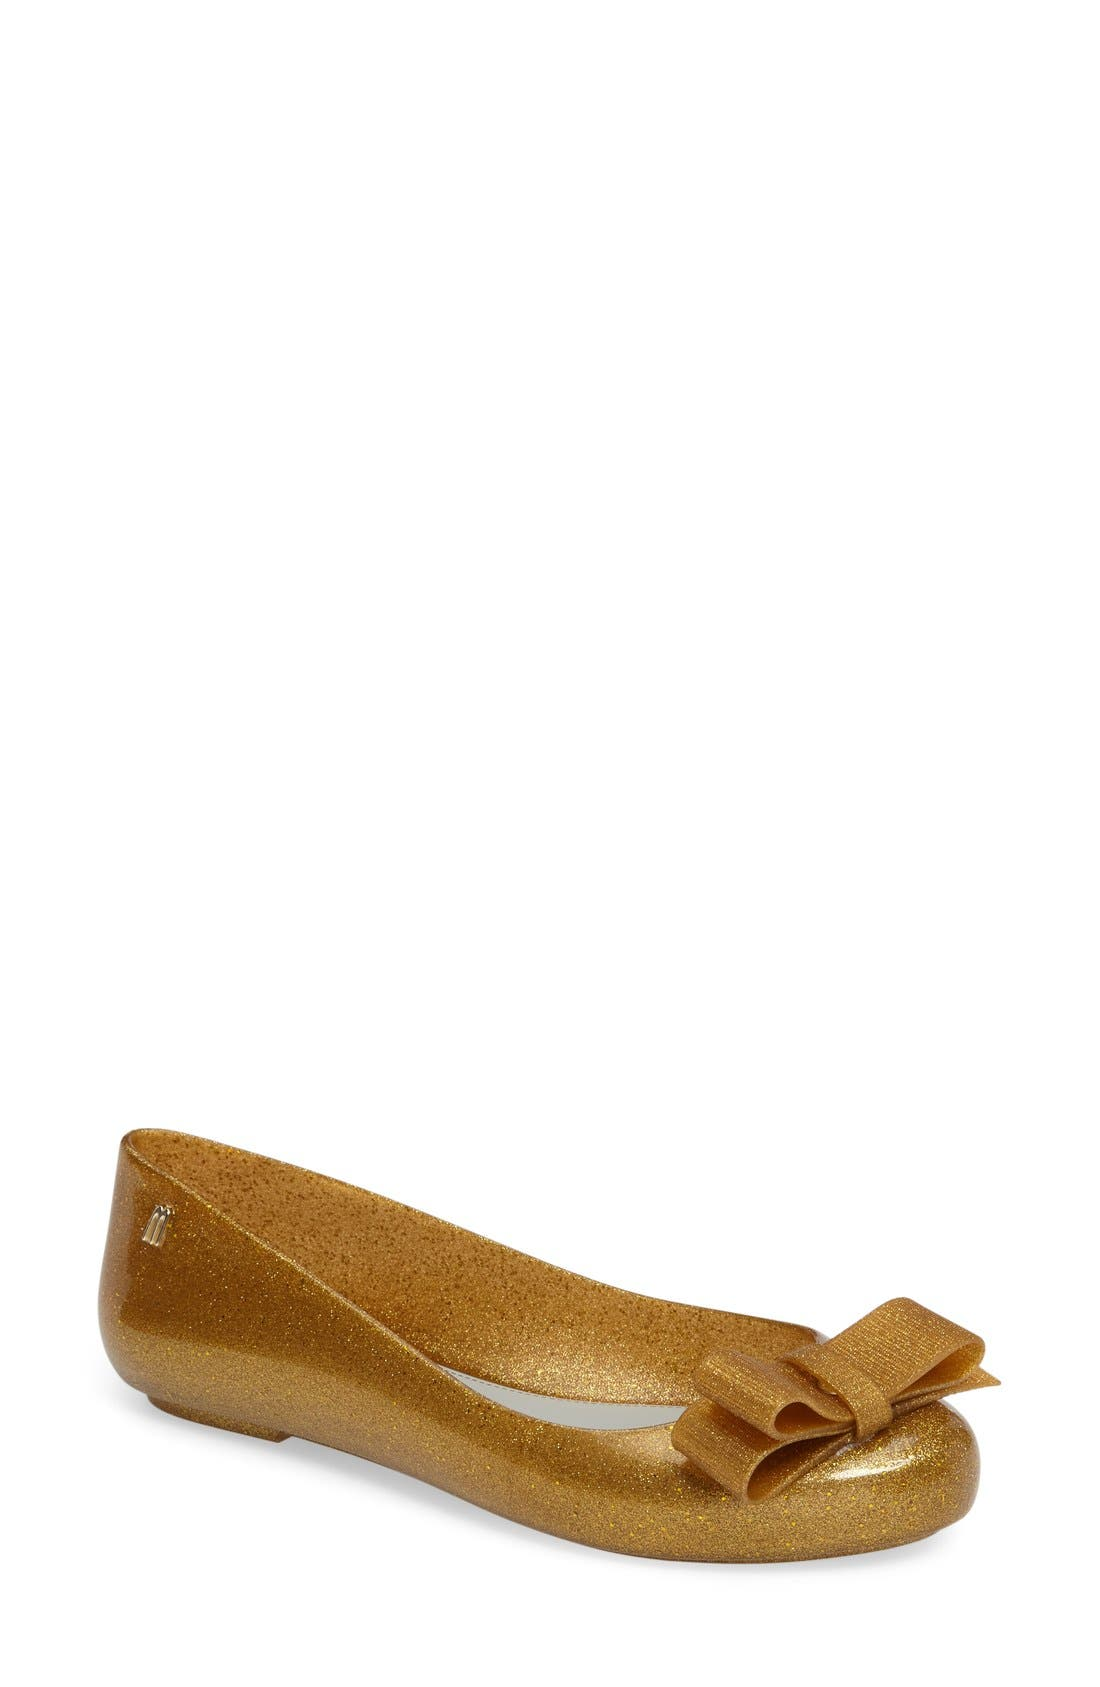 MELISSA x Jason Wu Space Love Flat